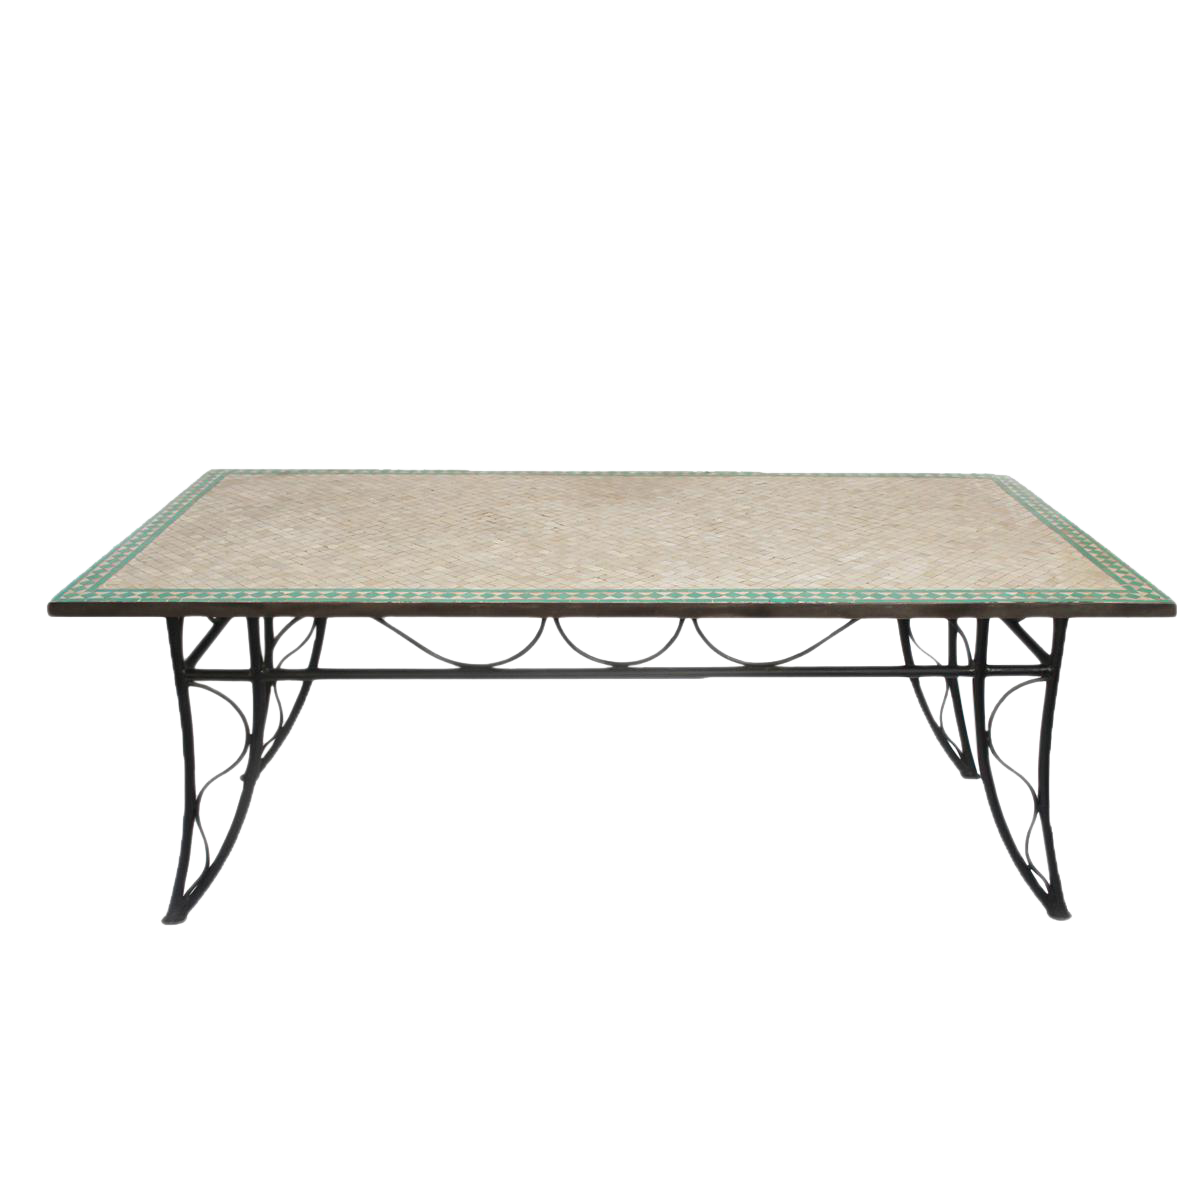 Mosaic Dining Room Table: Mosaic Tile Dining Table